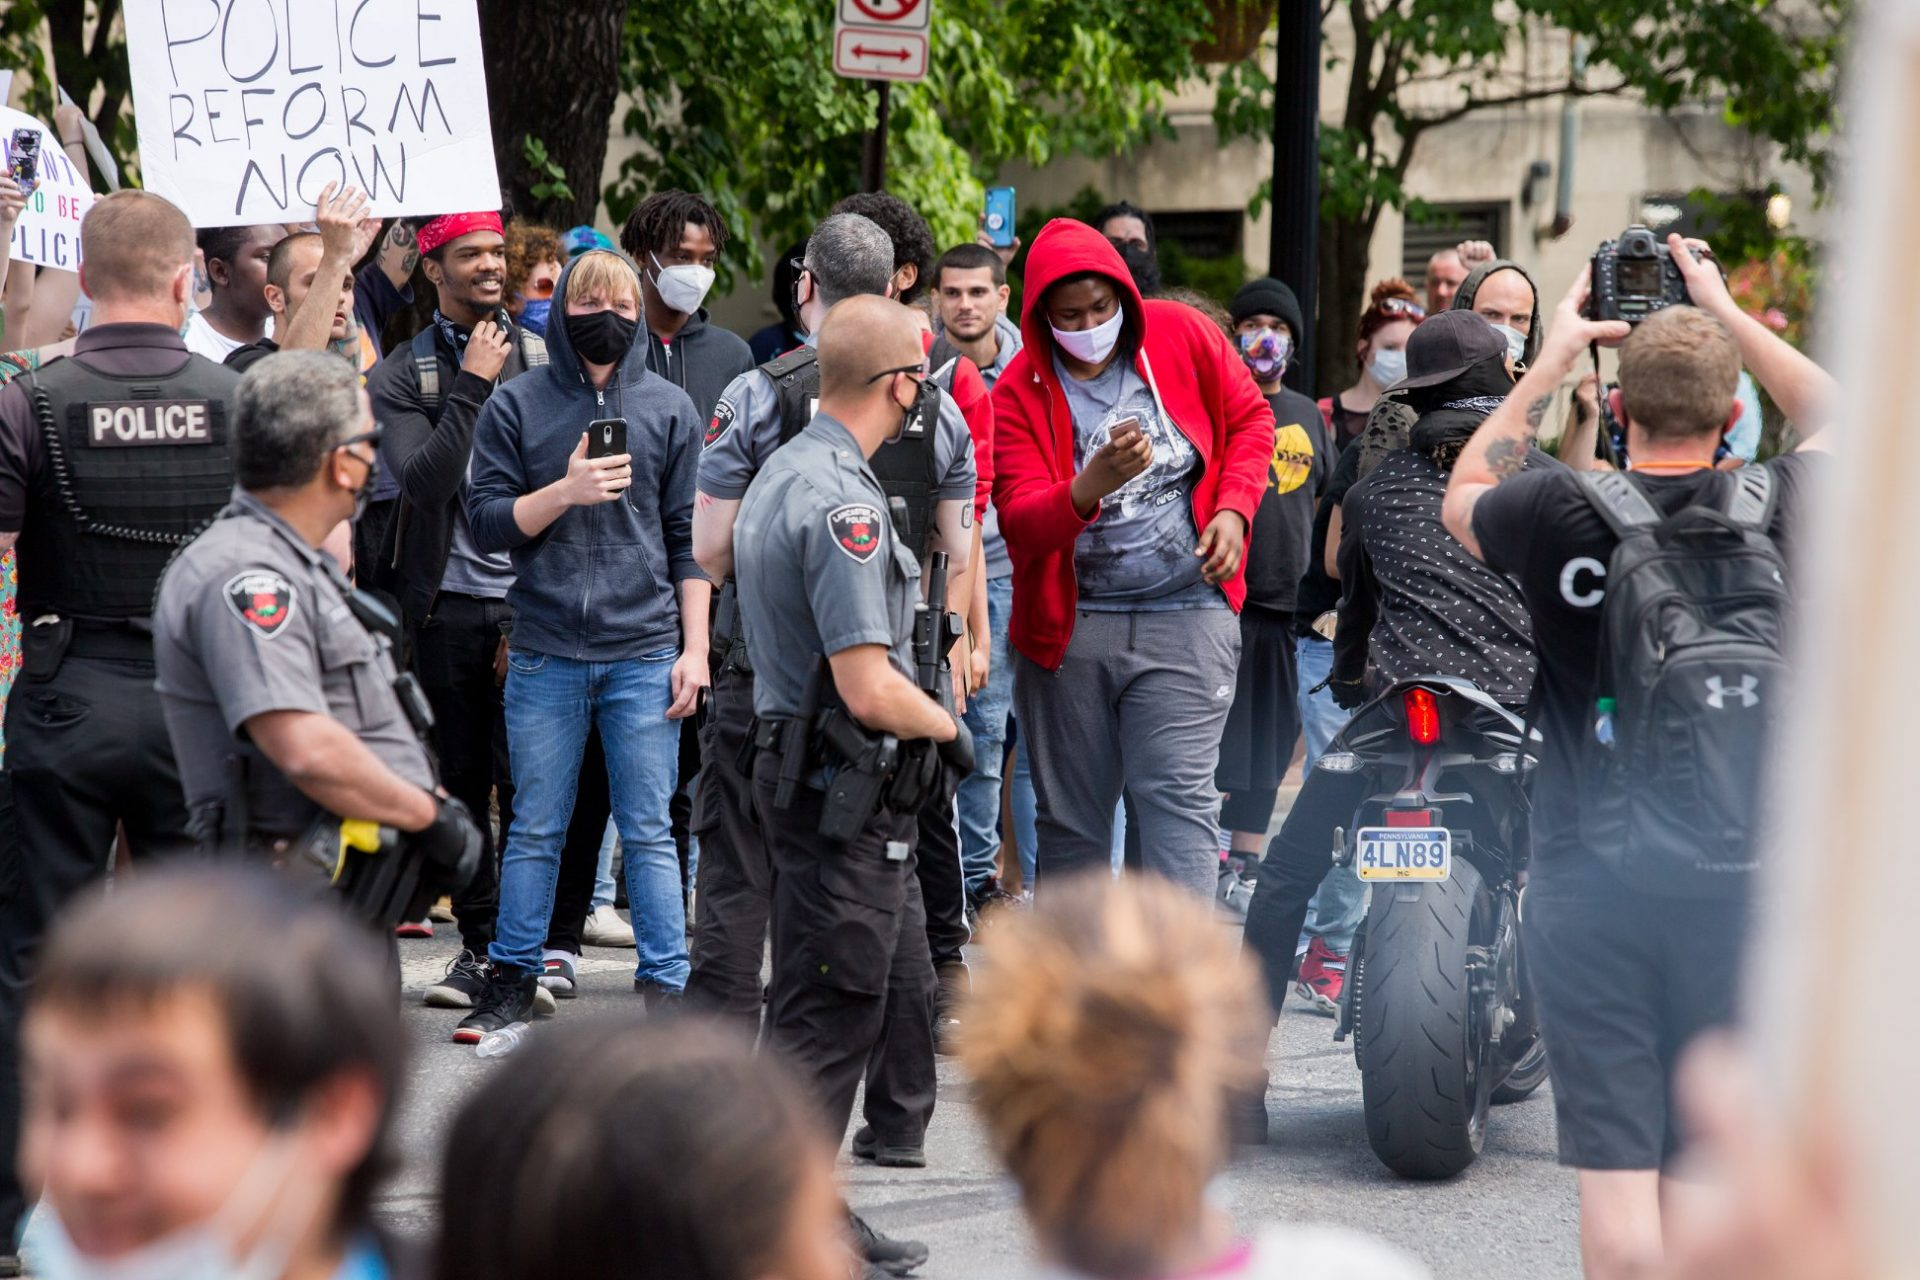 Police and protesters interact at the corner of North Prince and West Chestnut streets in Lancaster on Sunday, May 31, 2020. (Photo: Joyous Snyder)